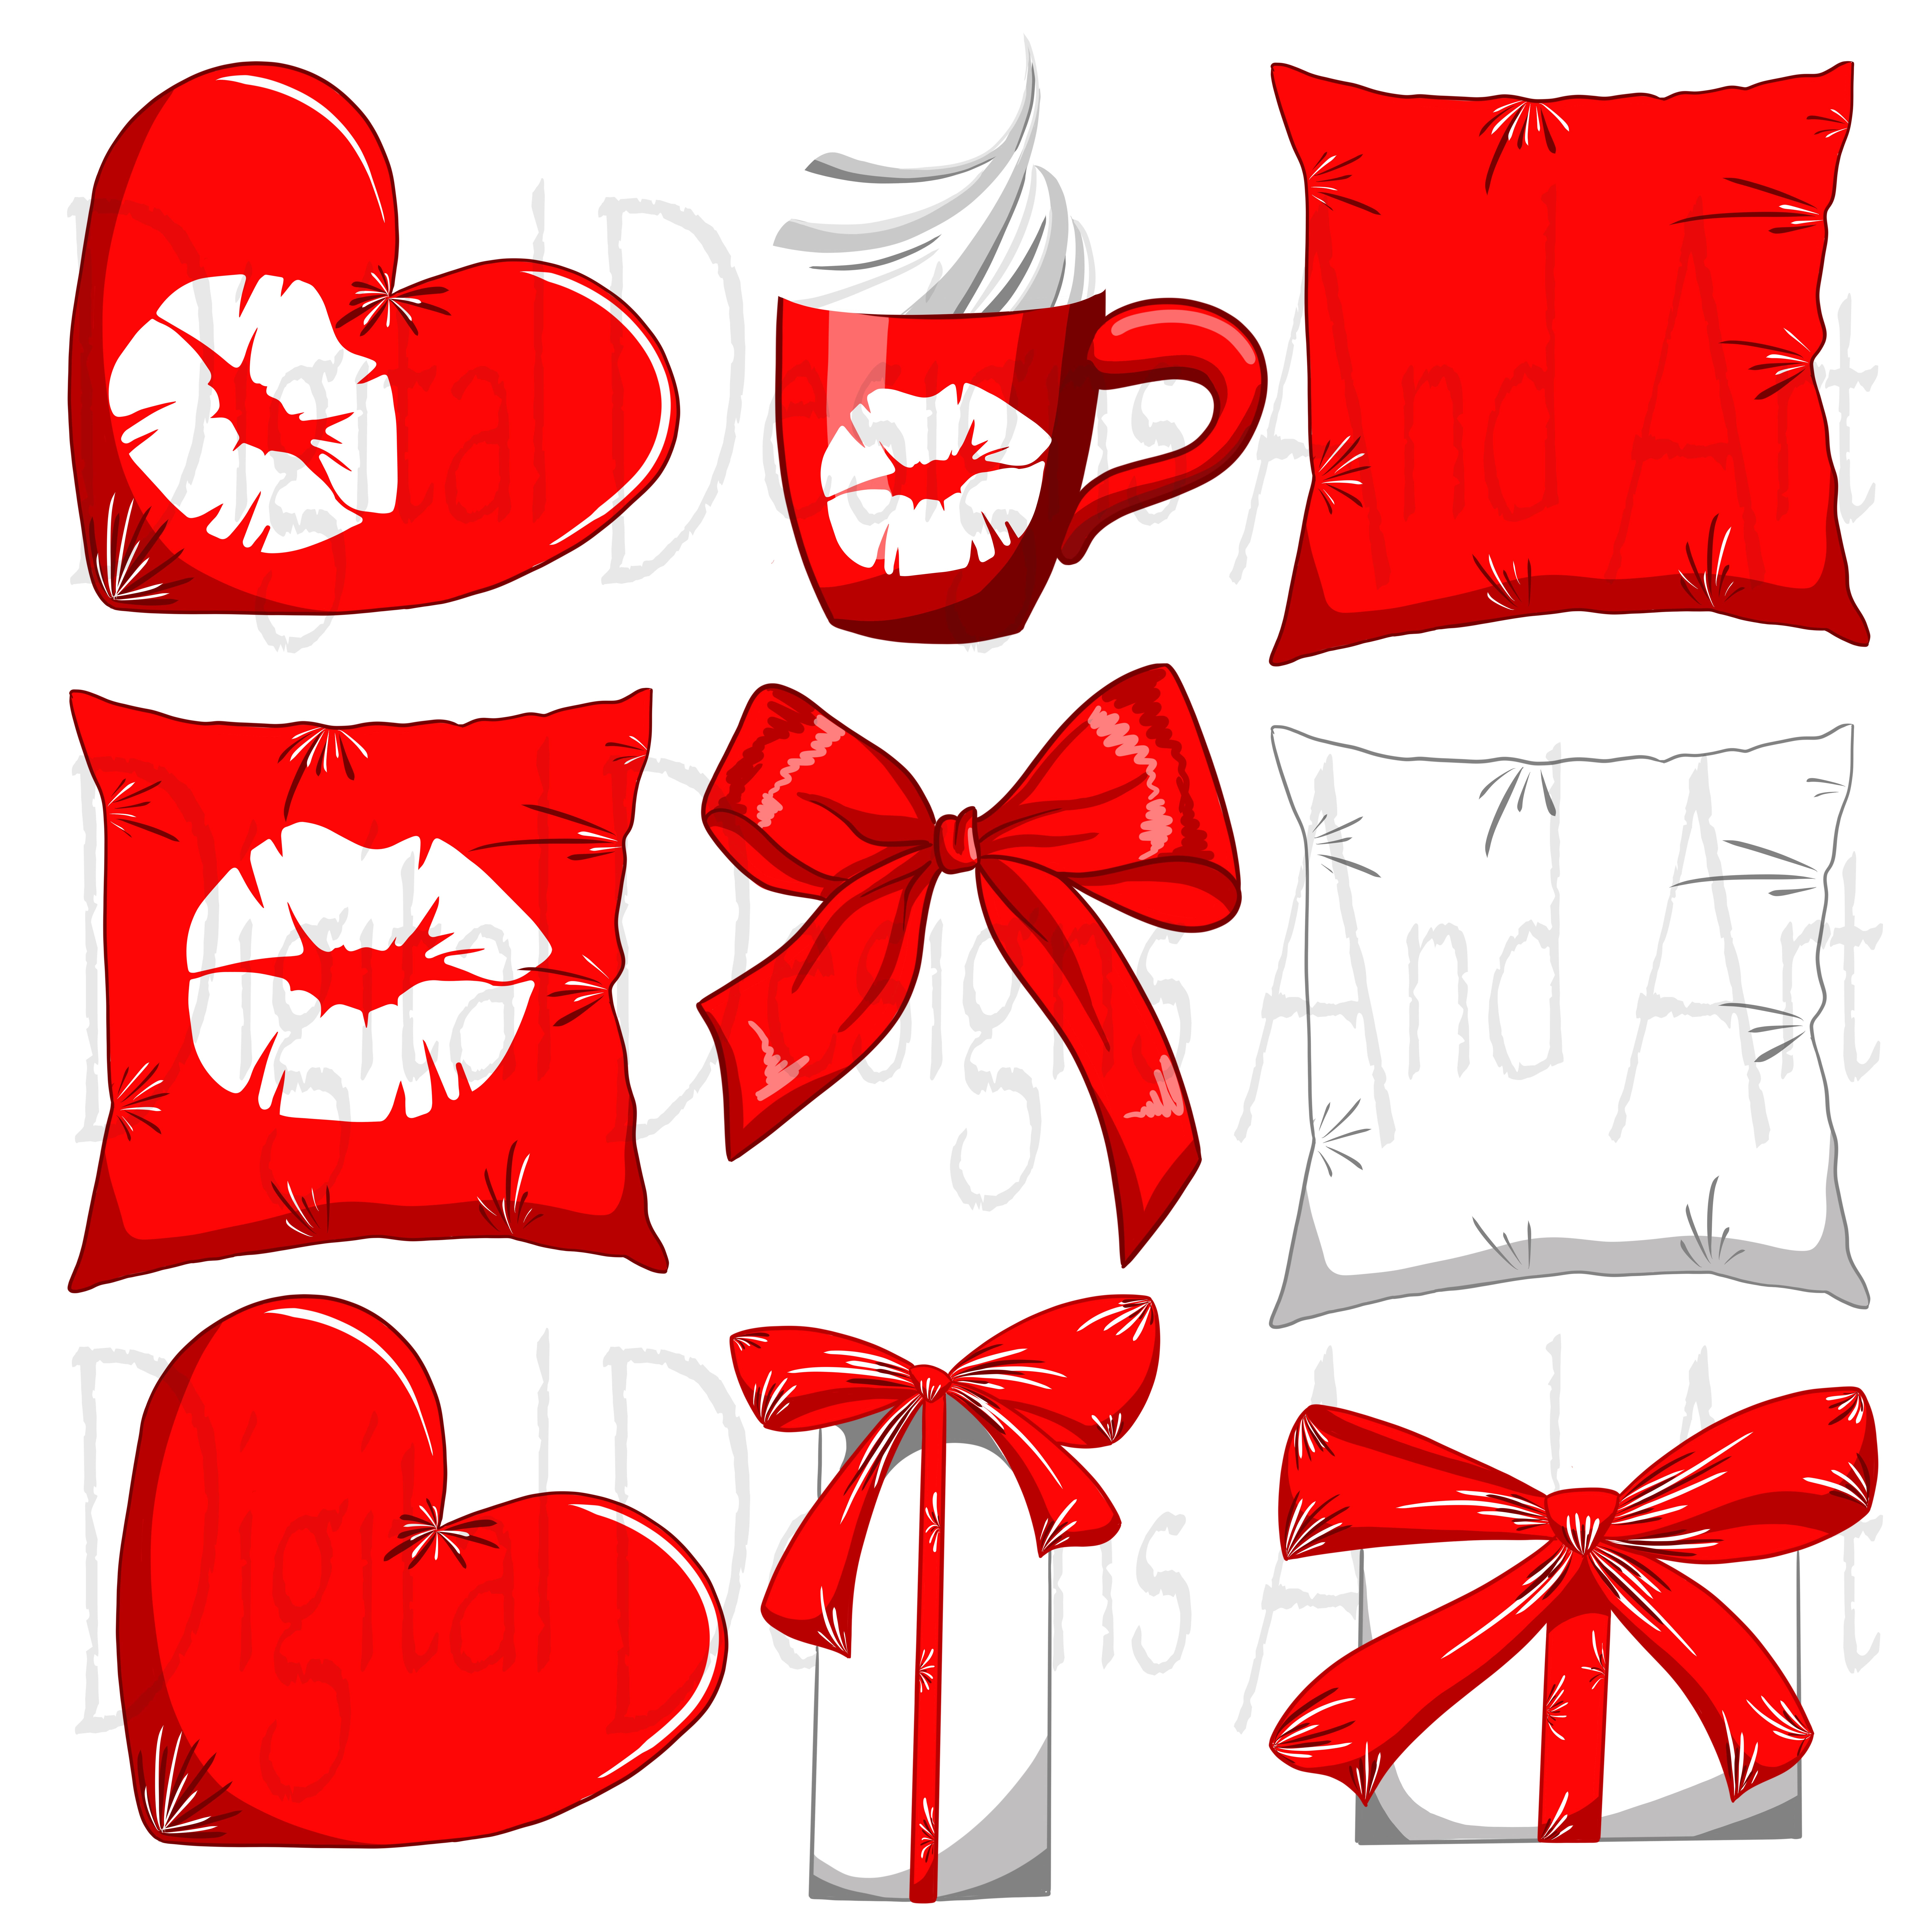 Kiss me clipart example image 5